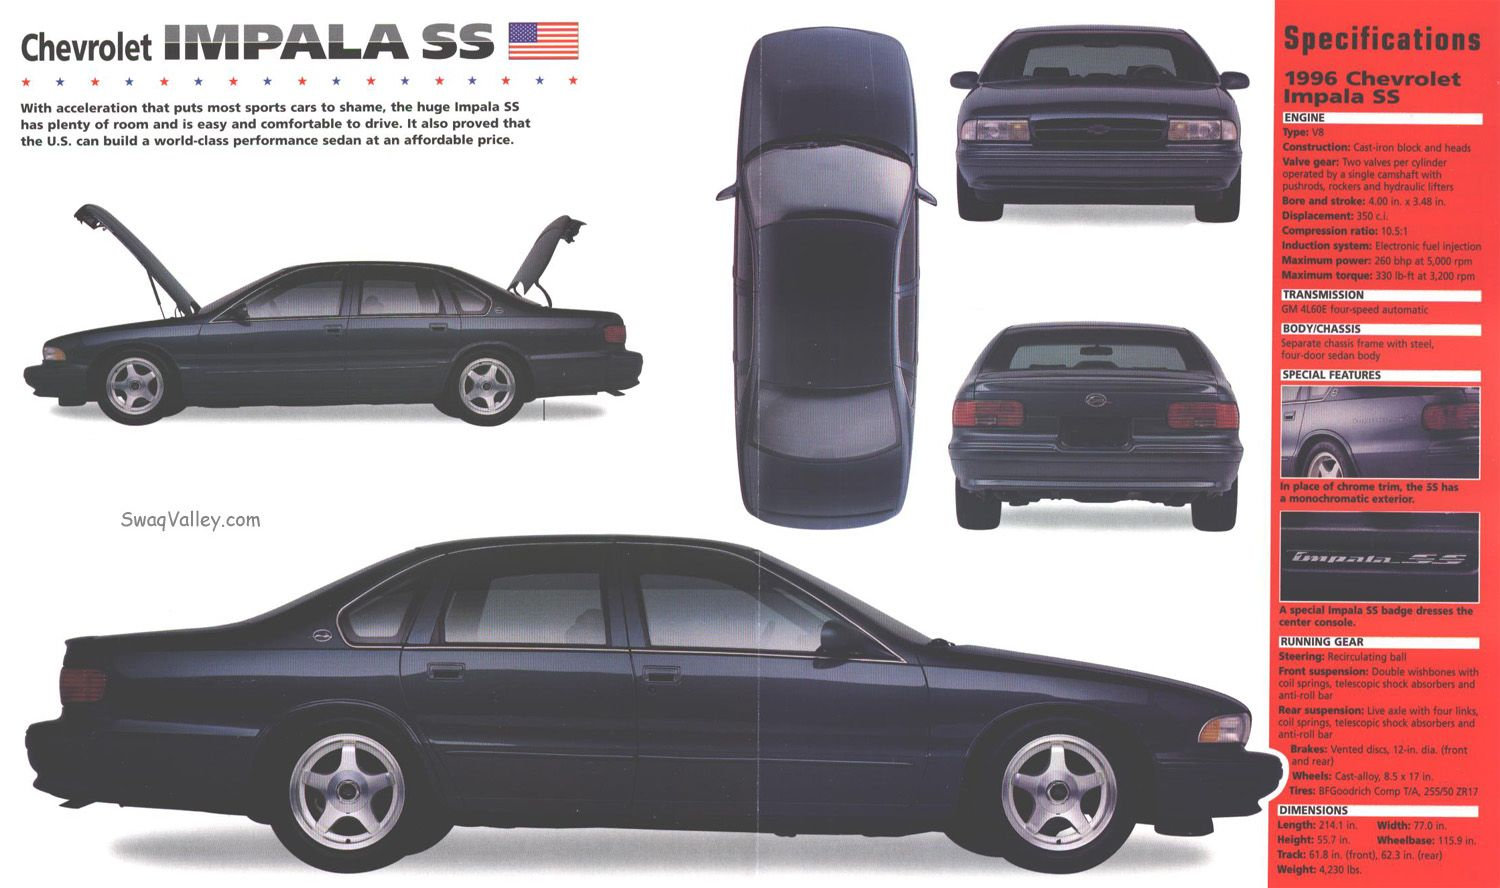 96 chevy impala ss the prettiest ugly car ever so good i want